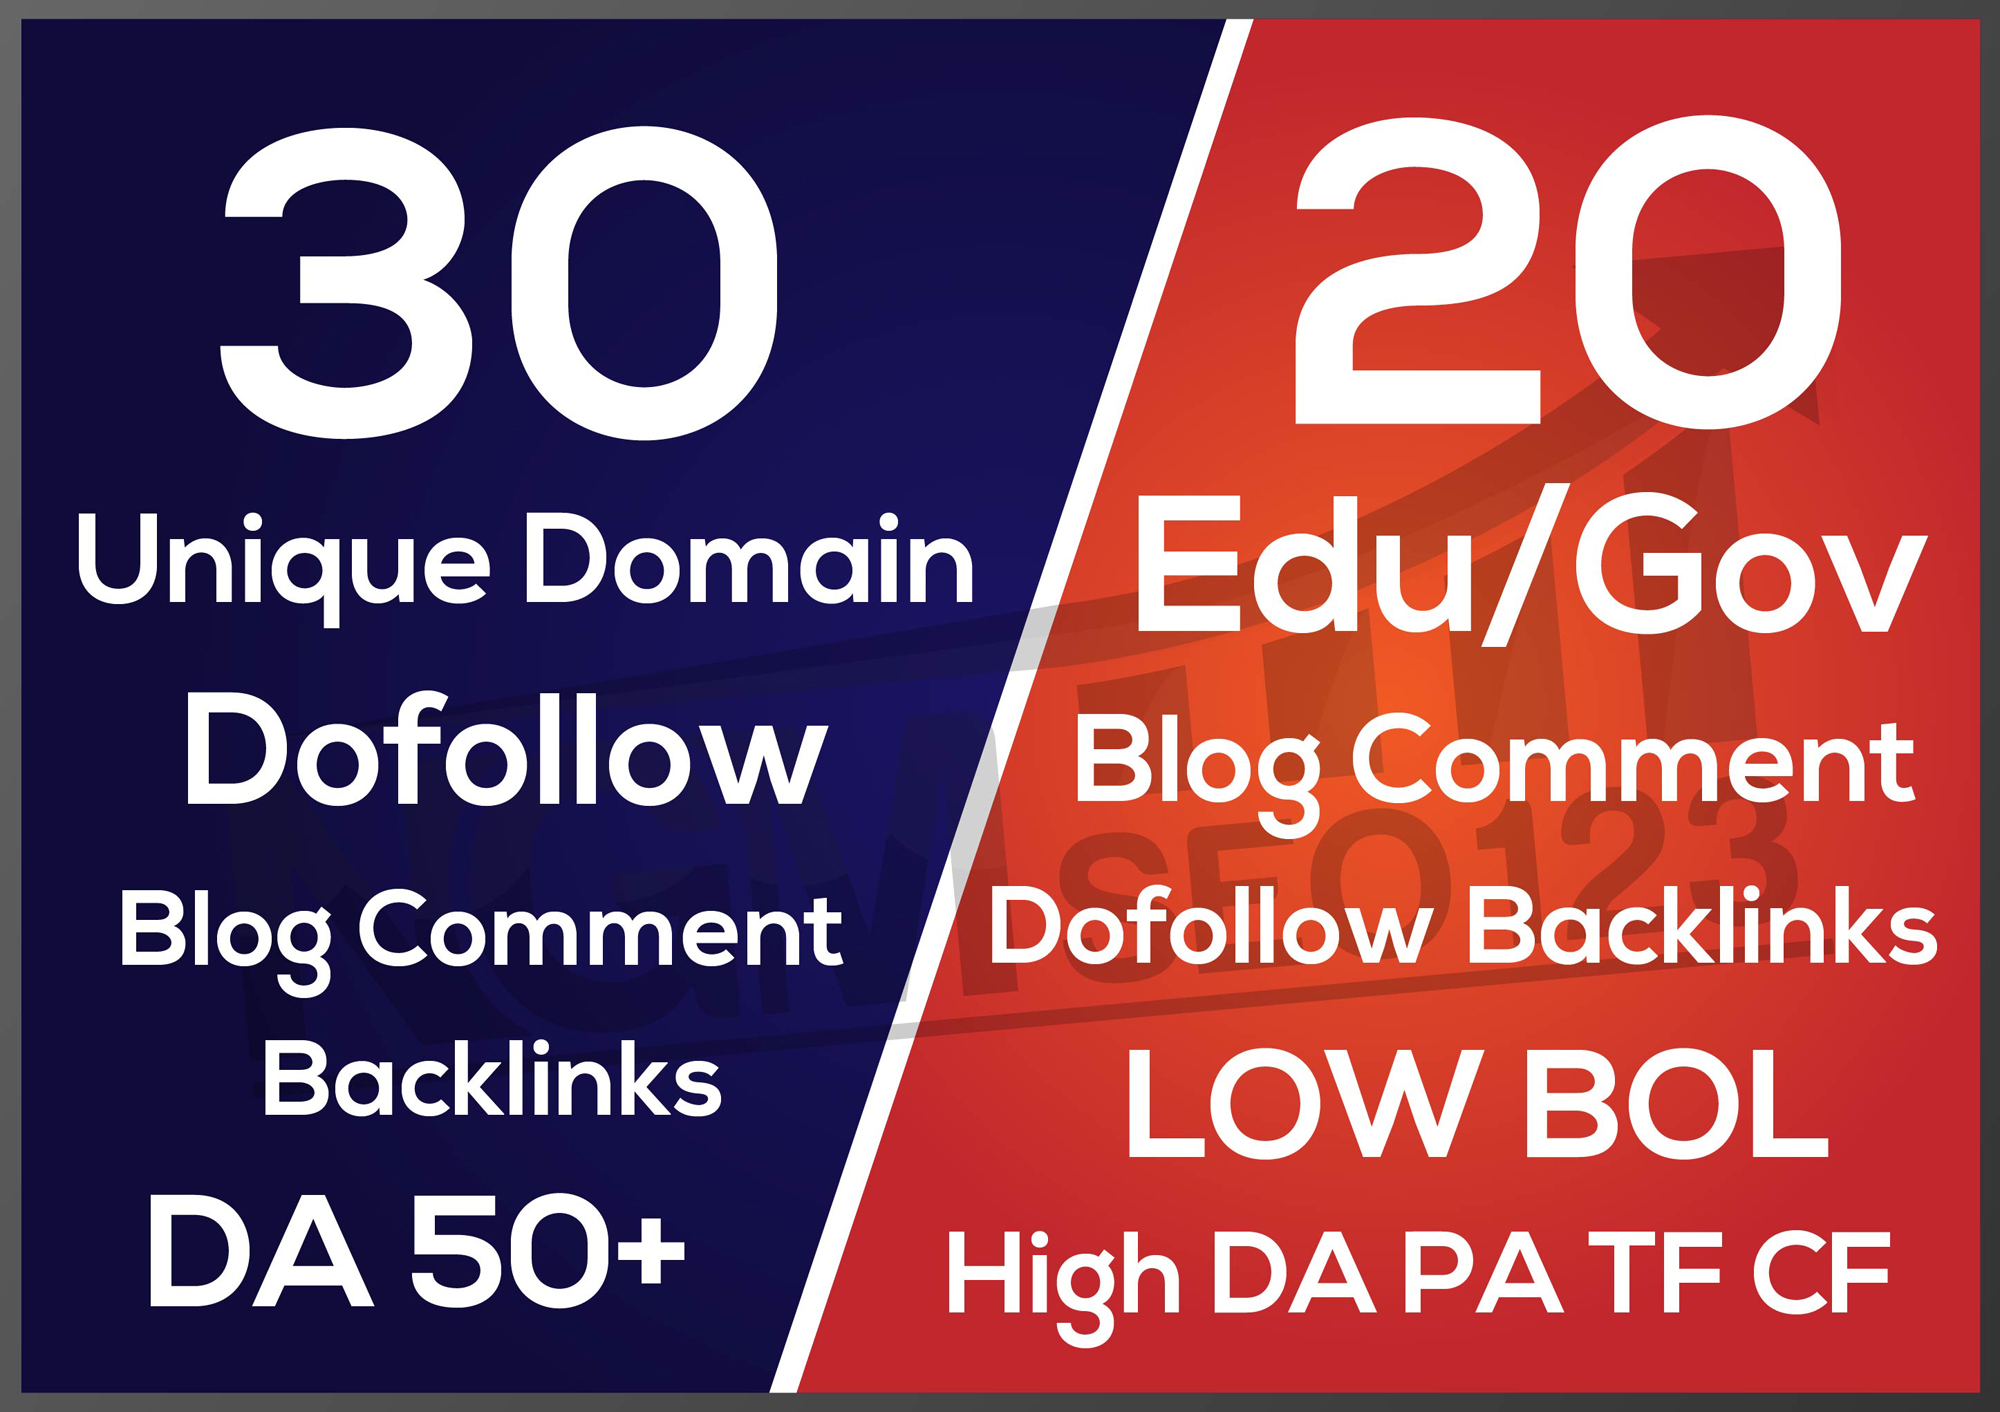 I will build 30 unique domain DA 50 backlinks 20 edu gov blog comment